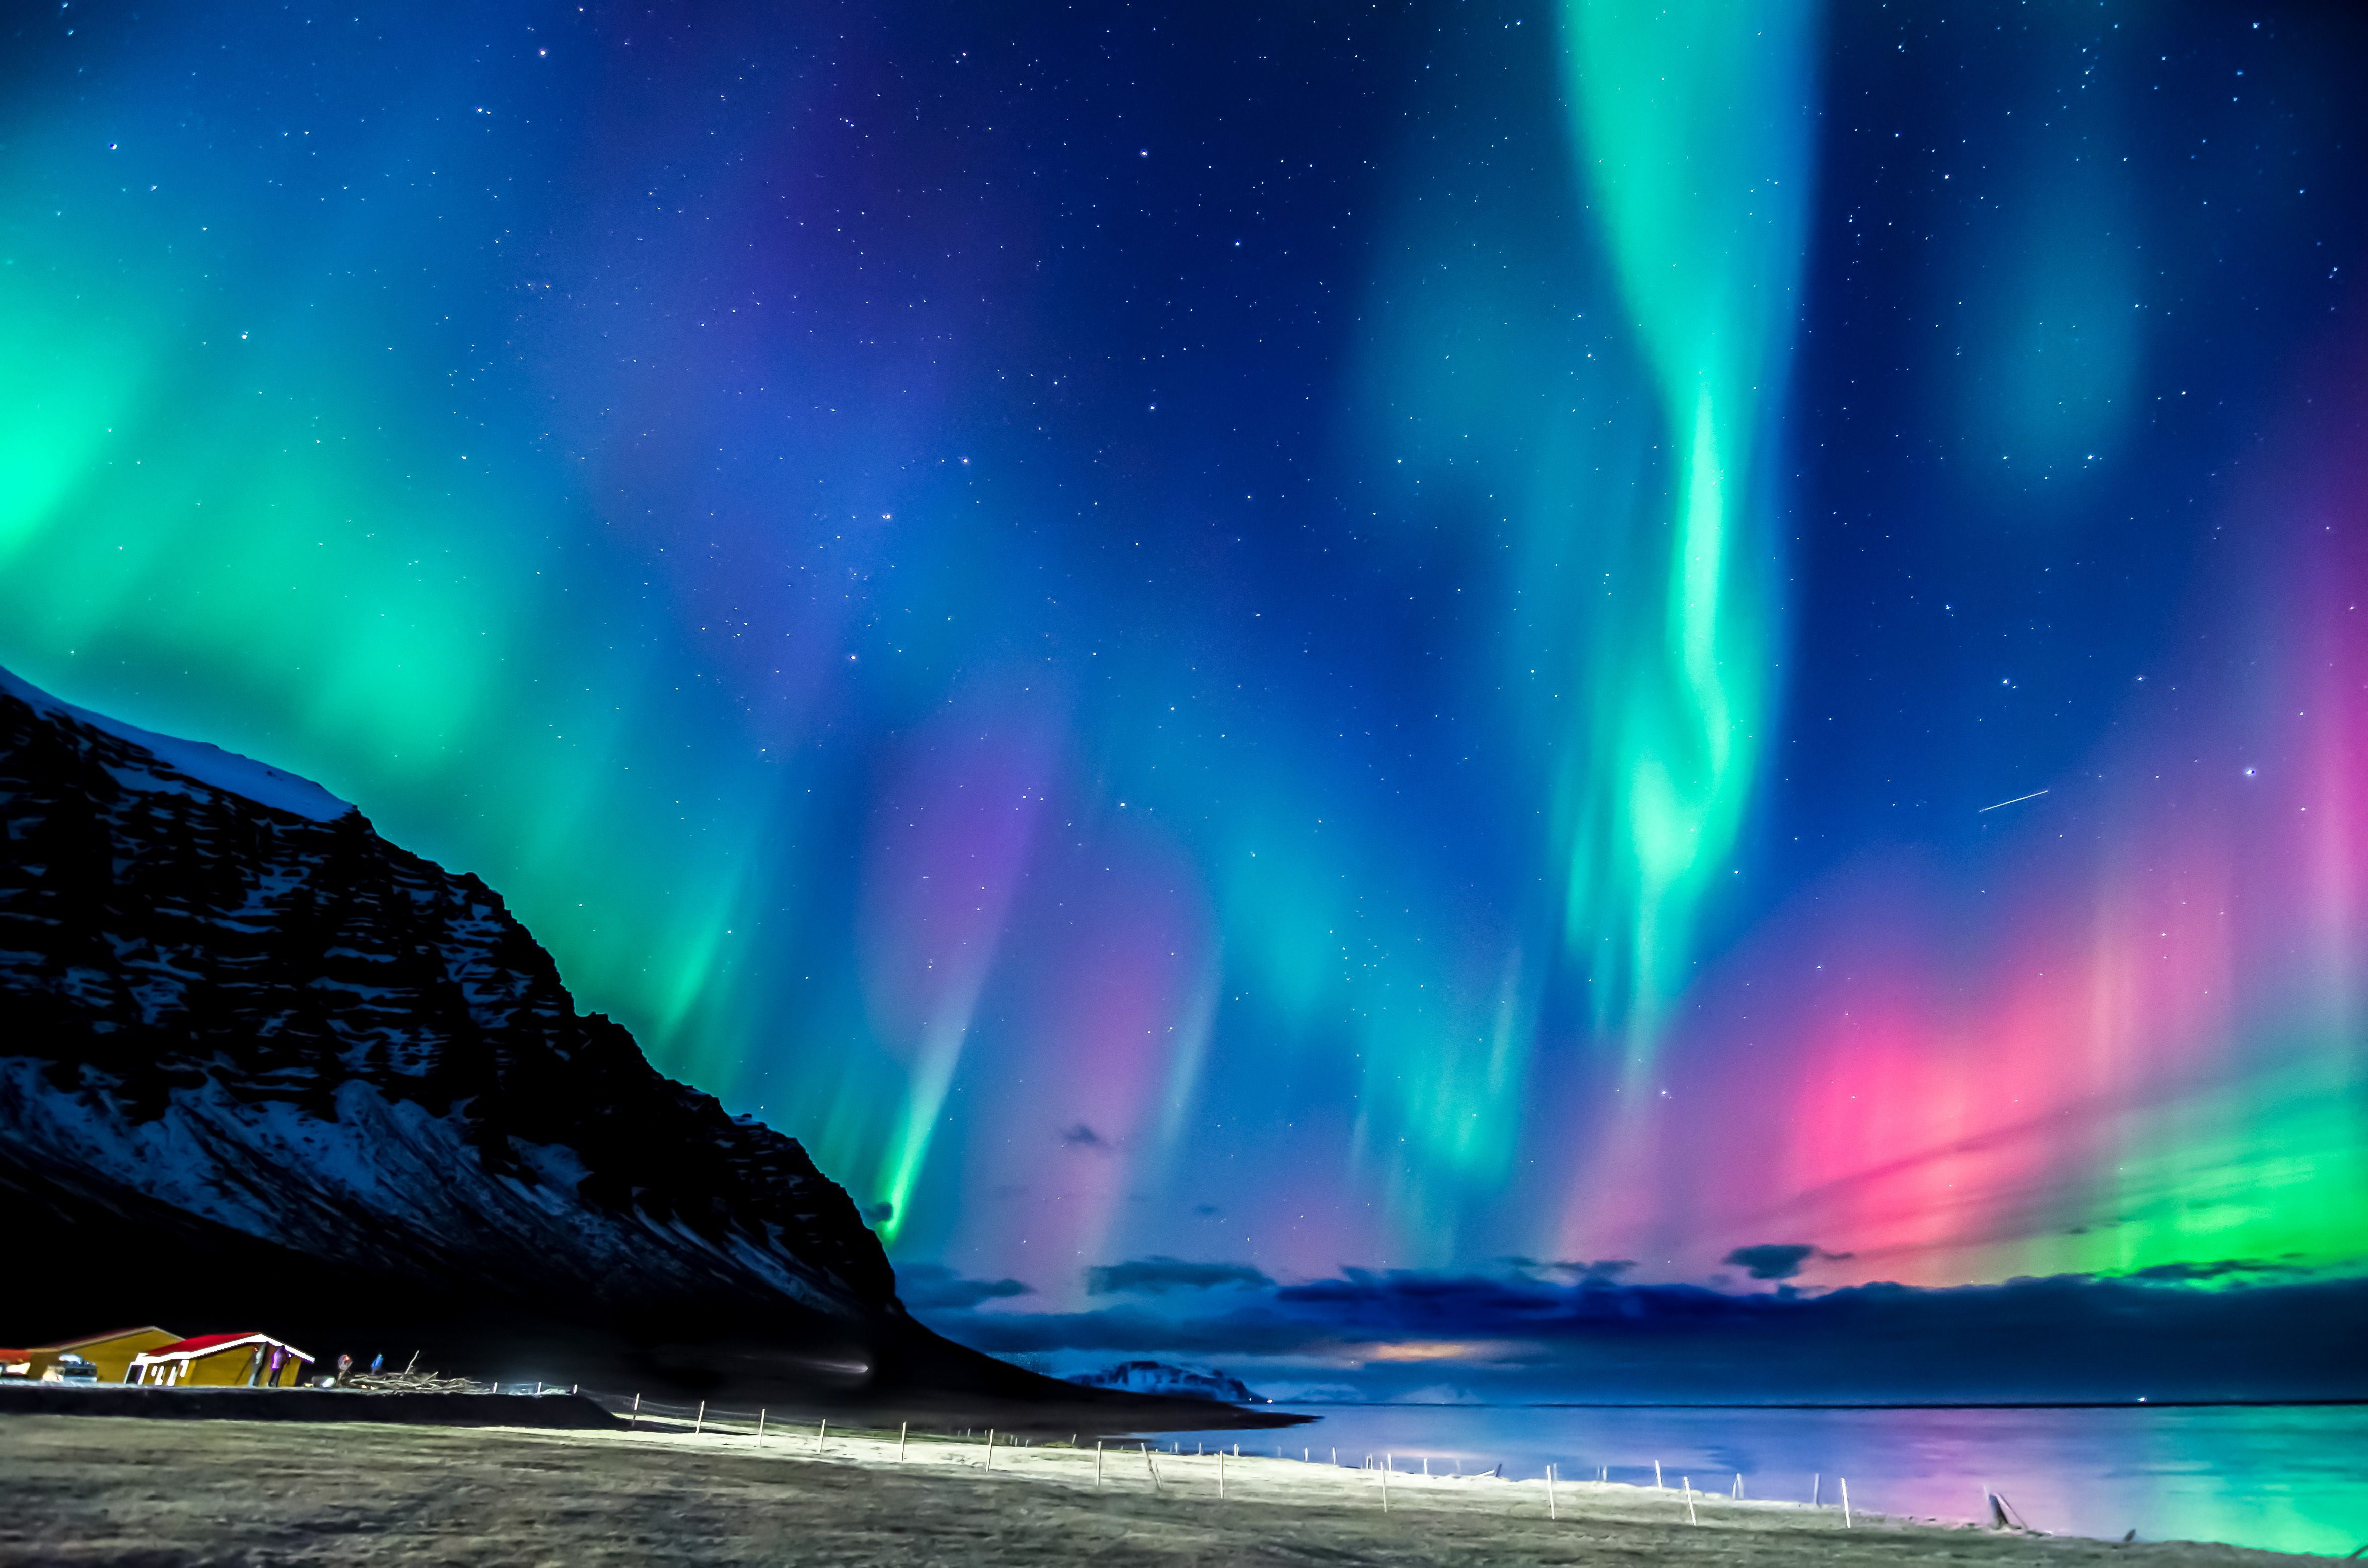 Aurora Borealis | Northern lights tours, Northern lights, Northern lights  iceland